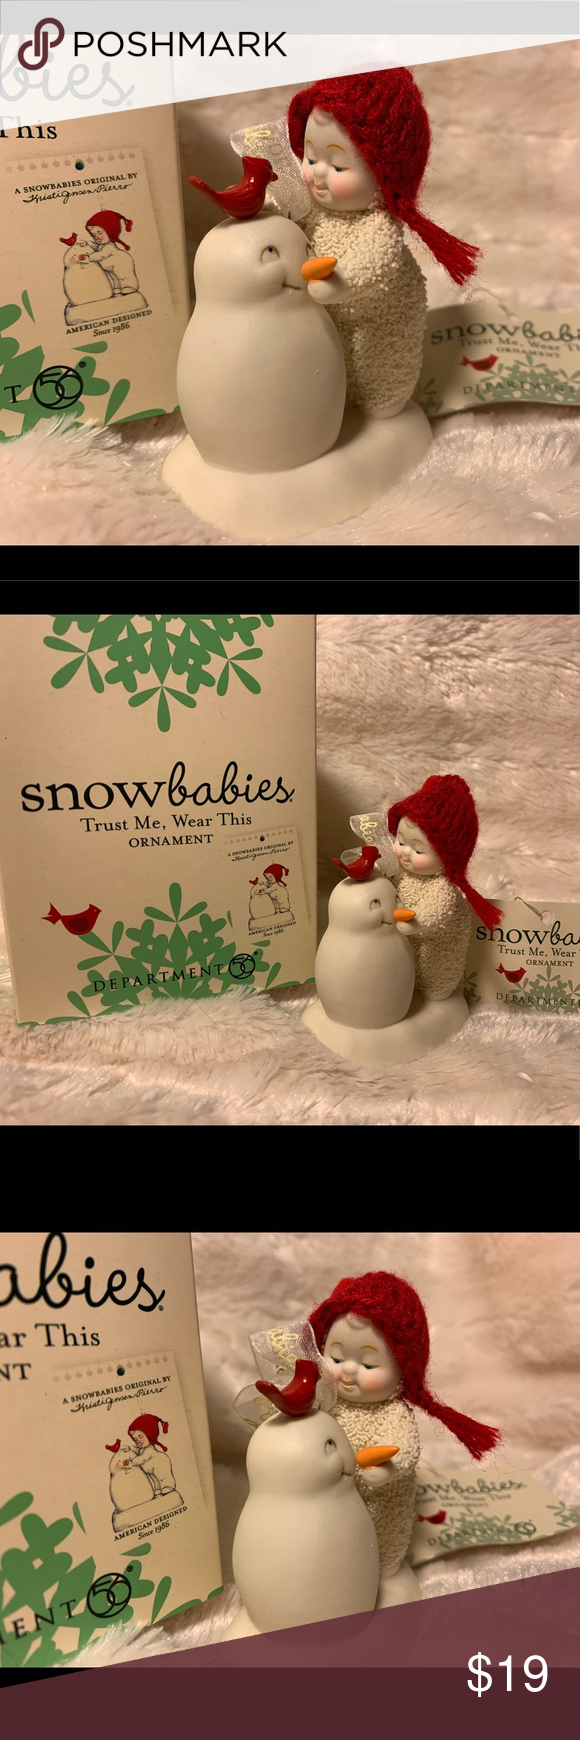 Snowbabies Dept 56 Trust Me, Wear This Ornament Retired  New in box Department 56 Holiday Ornaments #department56